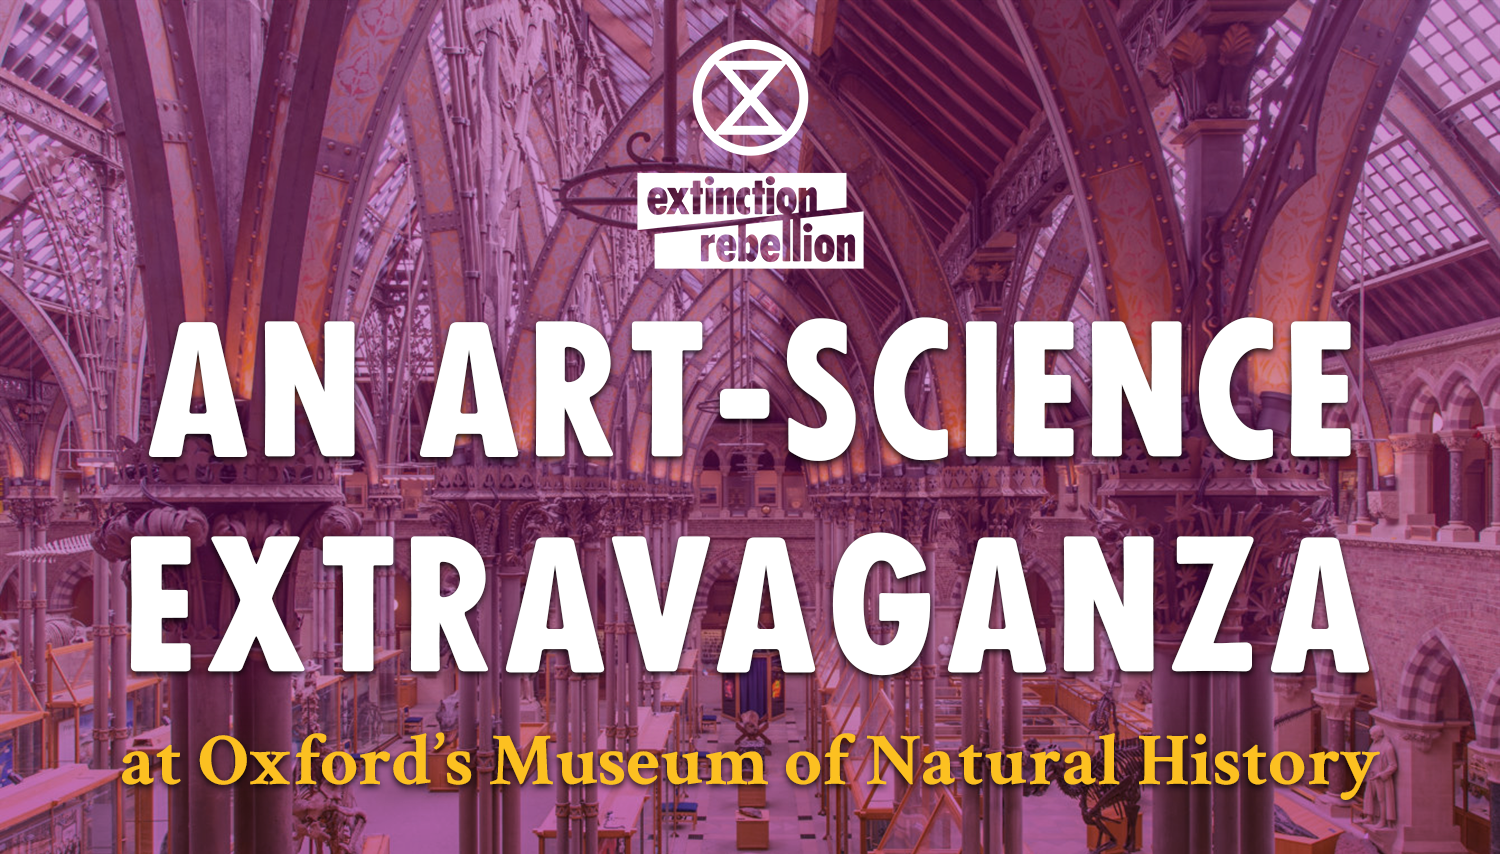 An Art-Science Extravaganza at Oxford's Museum of Natural History.